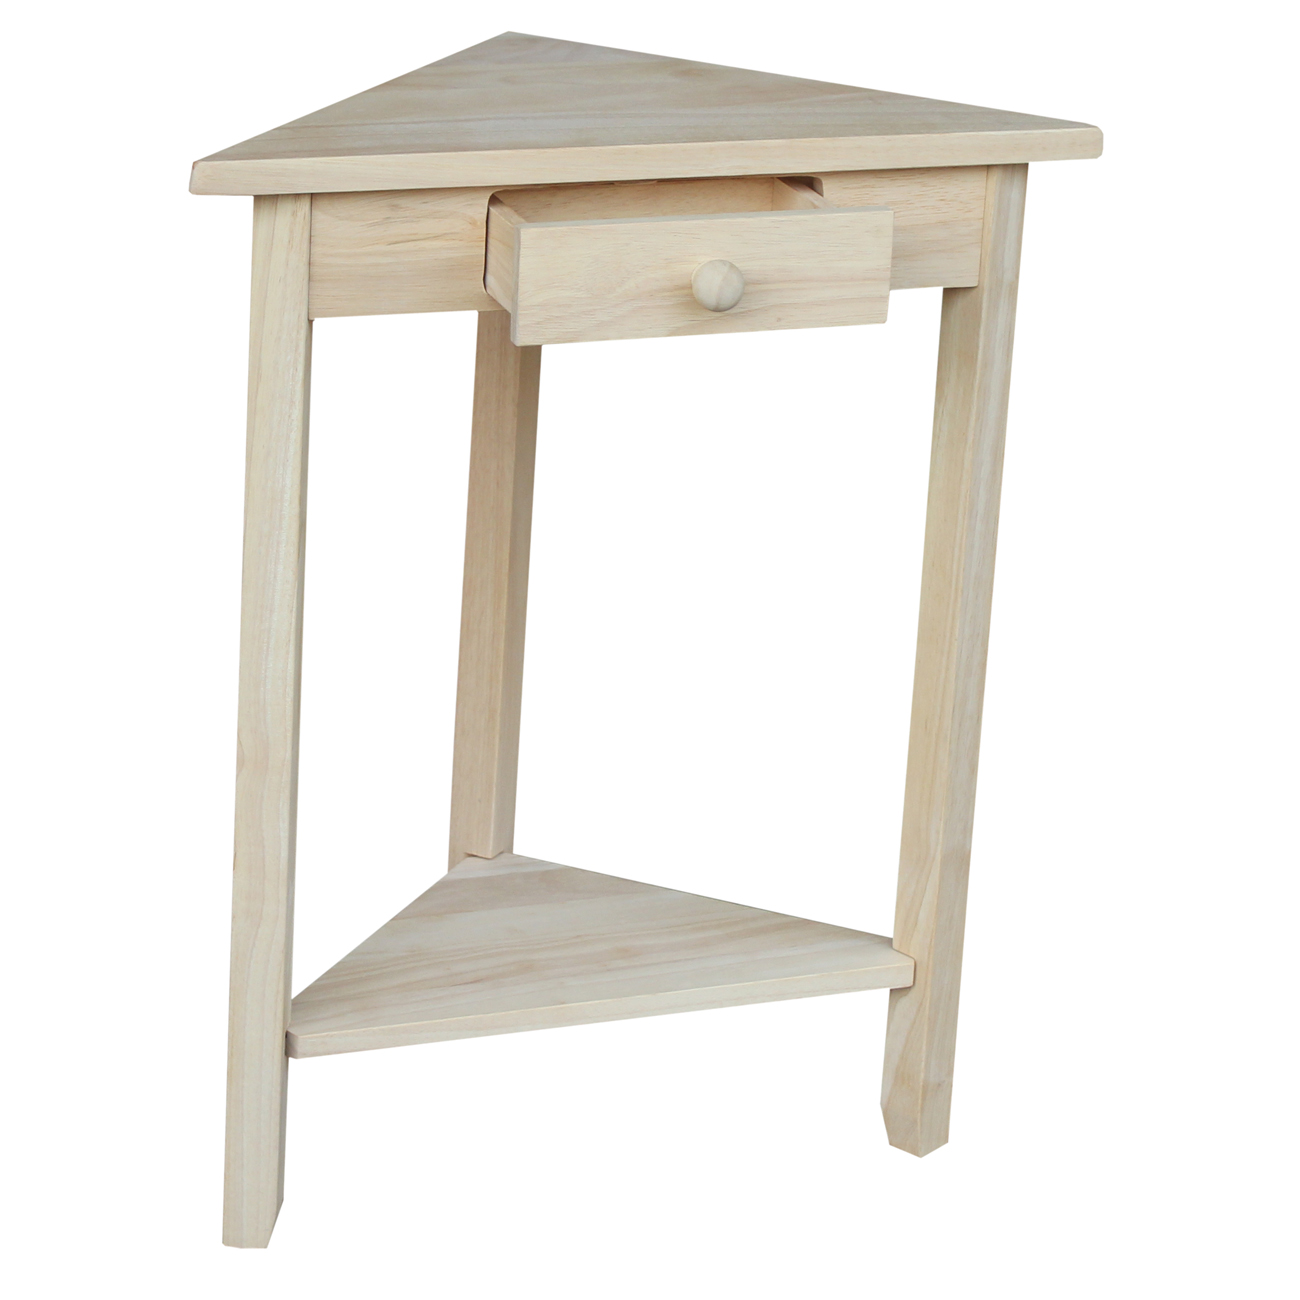 international concepts corner accent table ready finish room essentials instructions blue and white placemats outside storage box large trestle dining better homes gardens patio